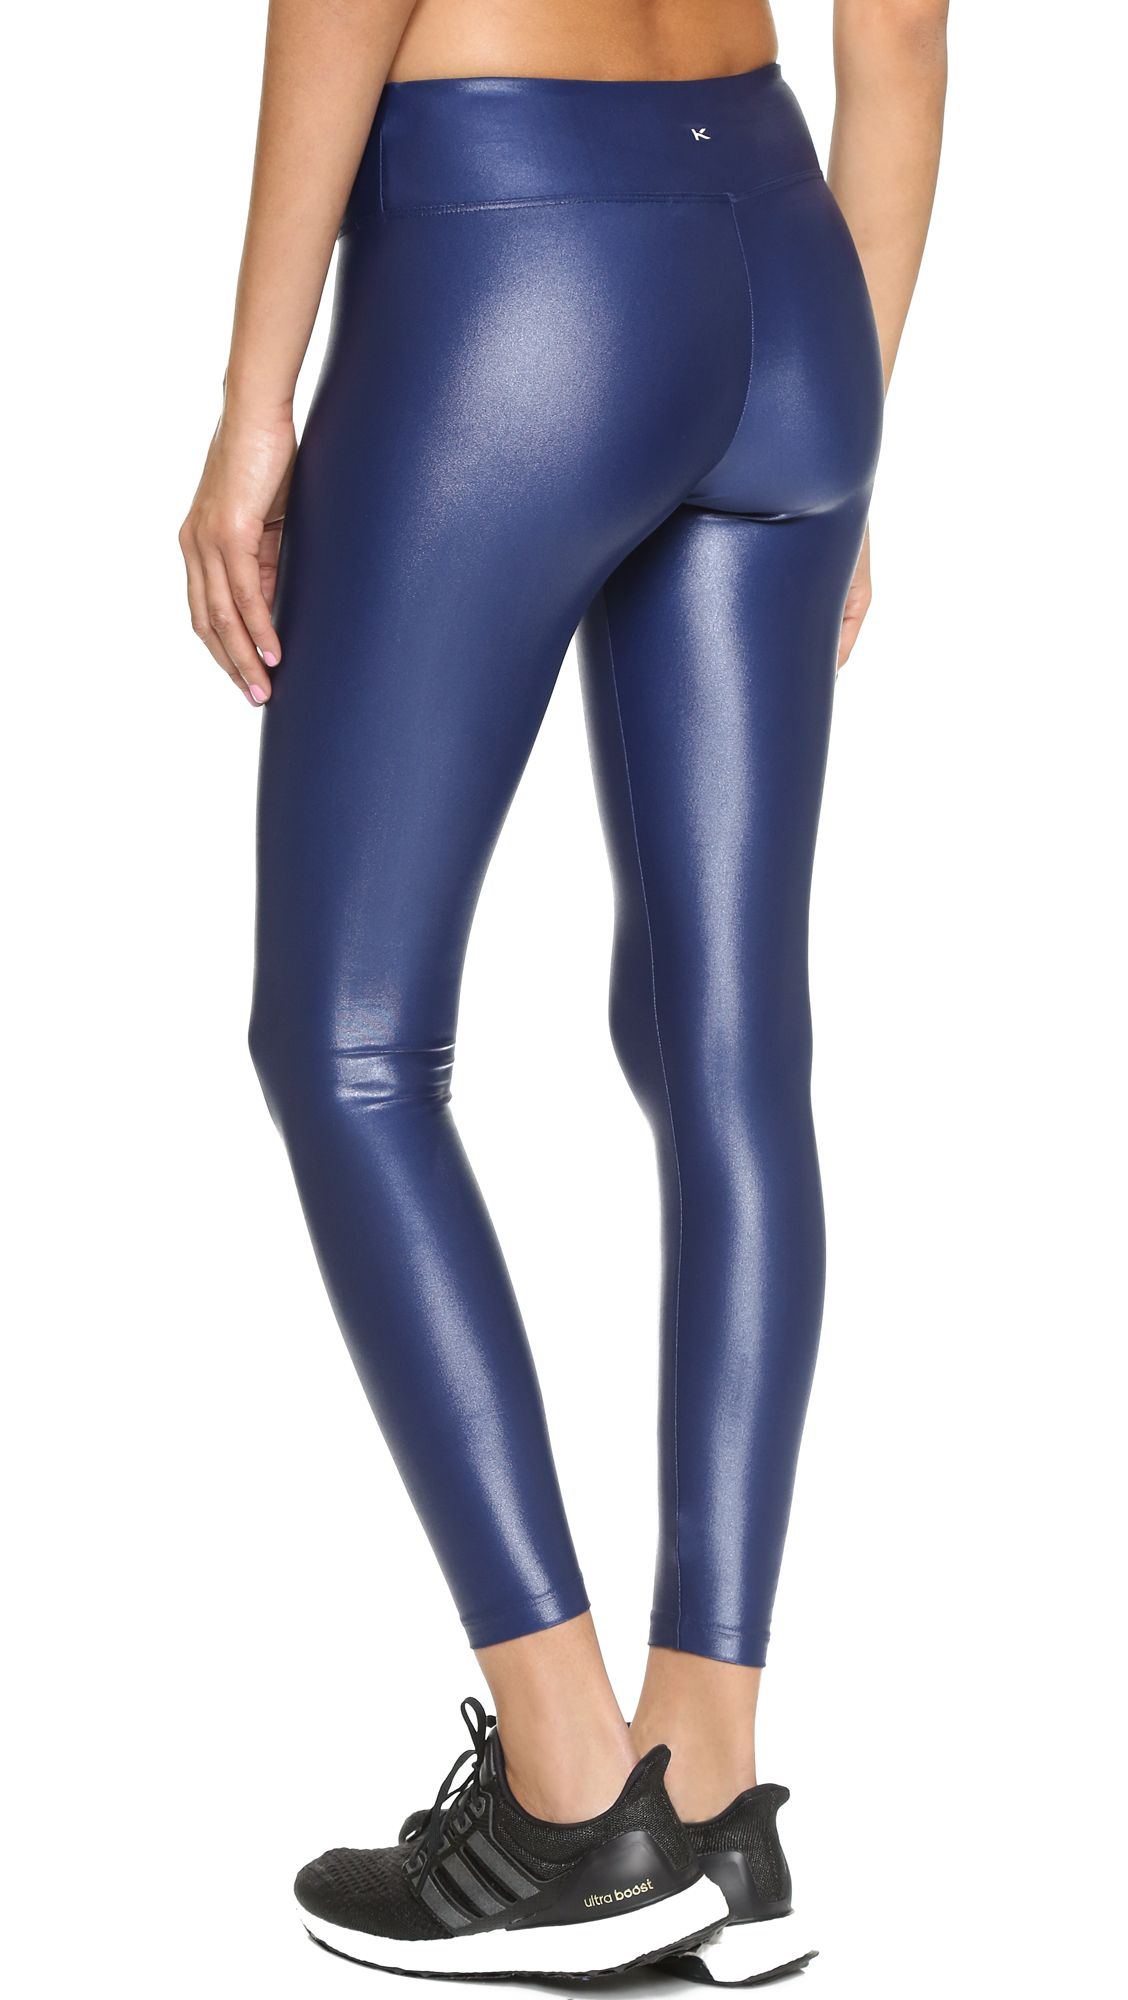 Women's Blue Lustrous Legging